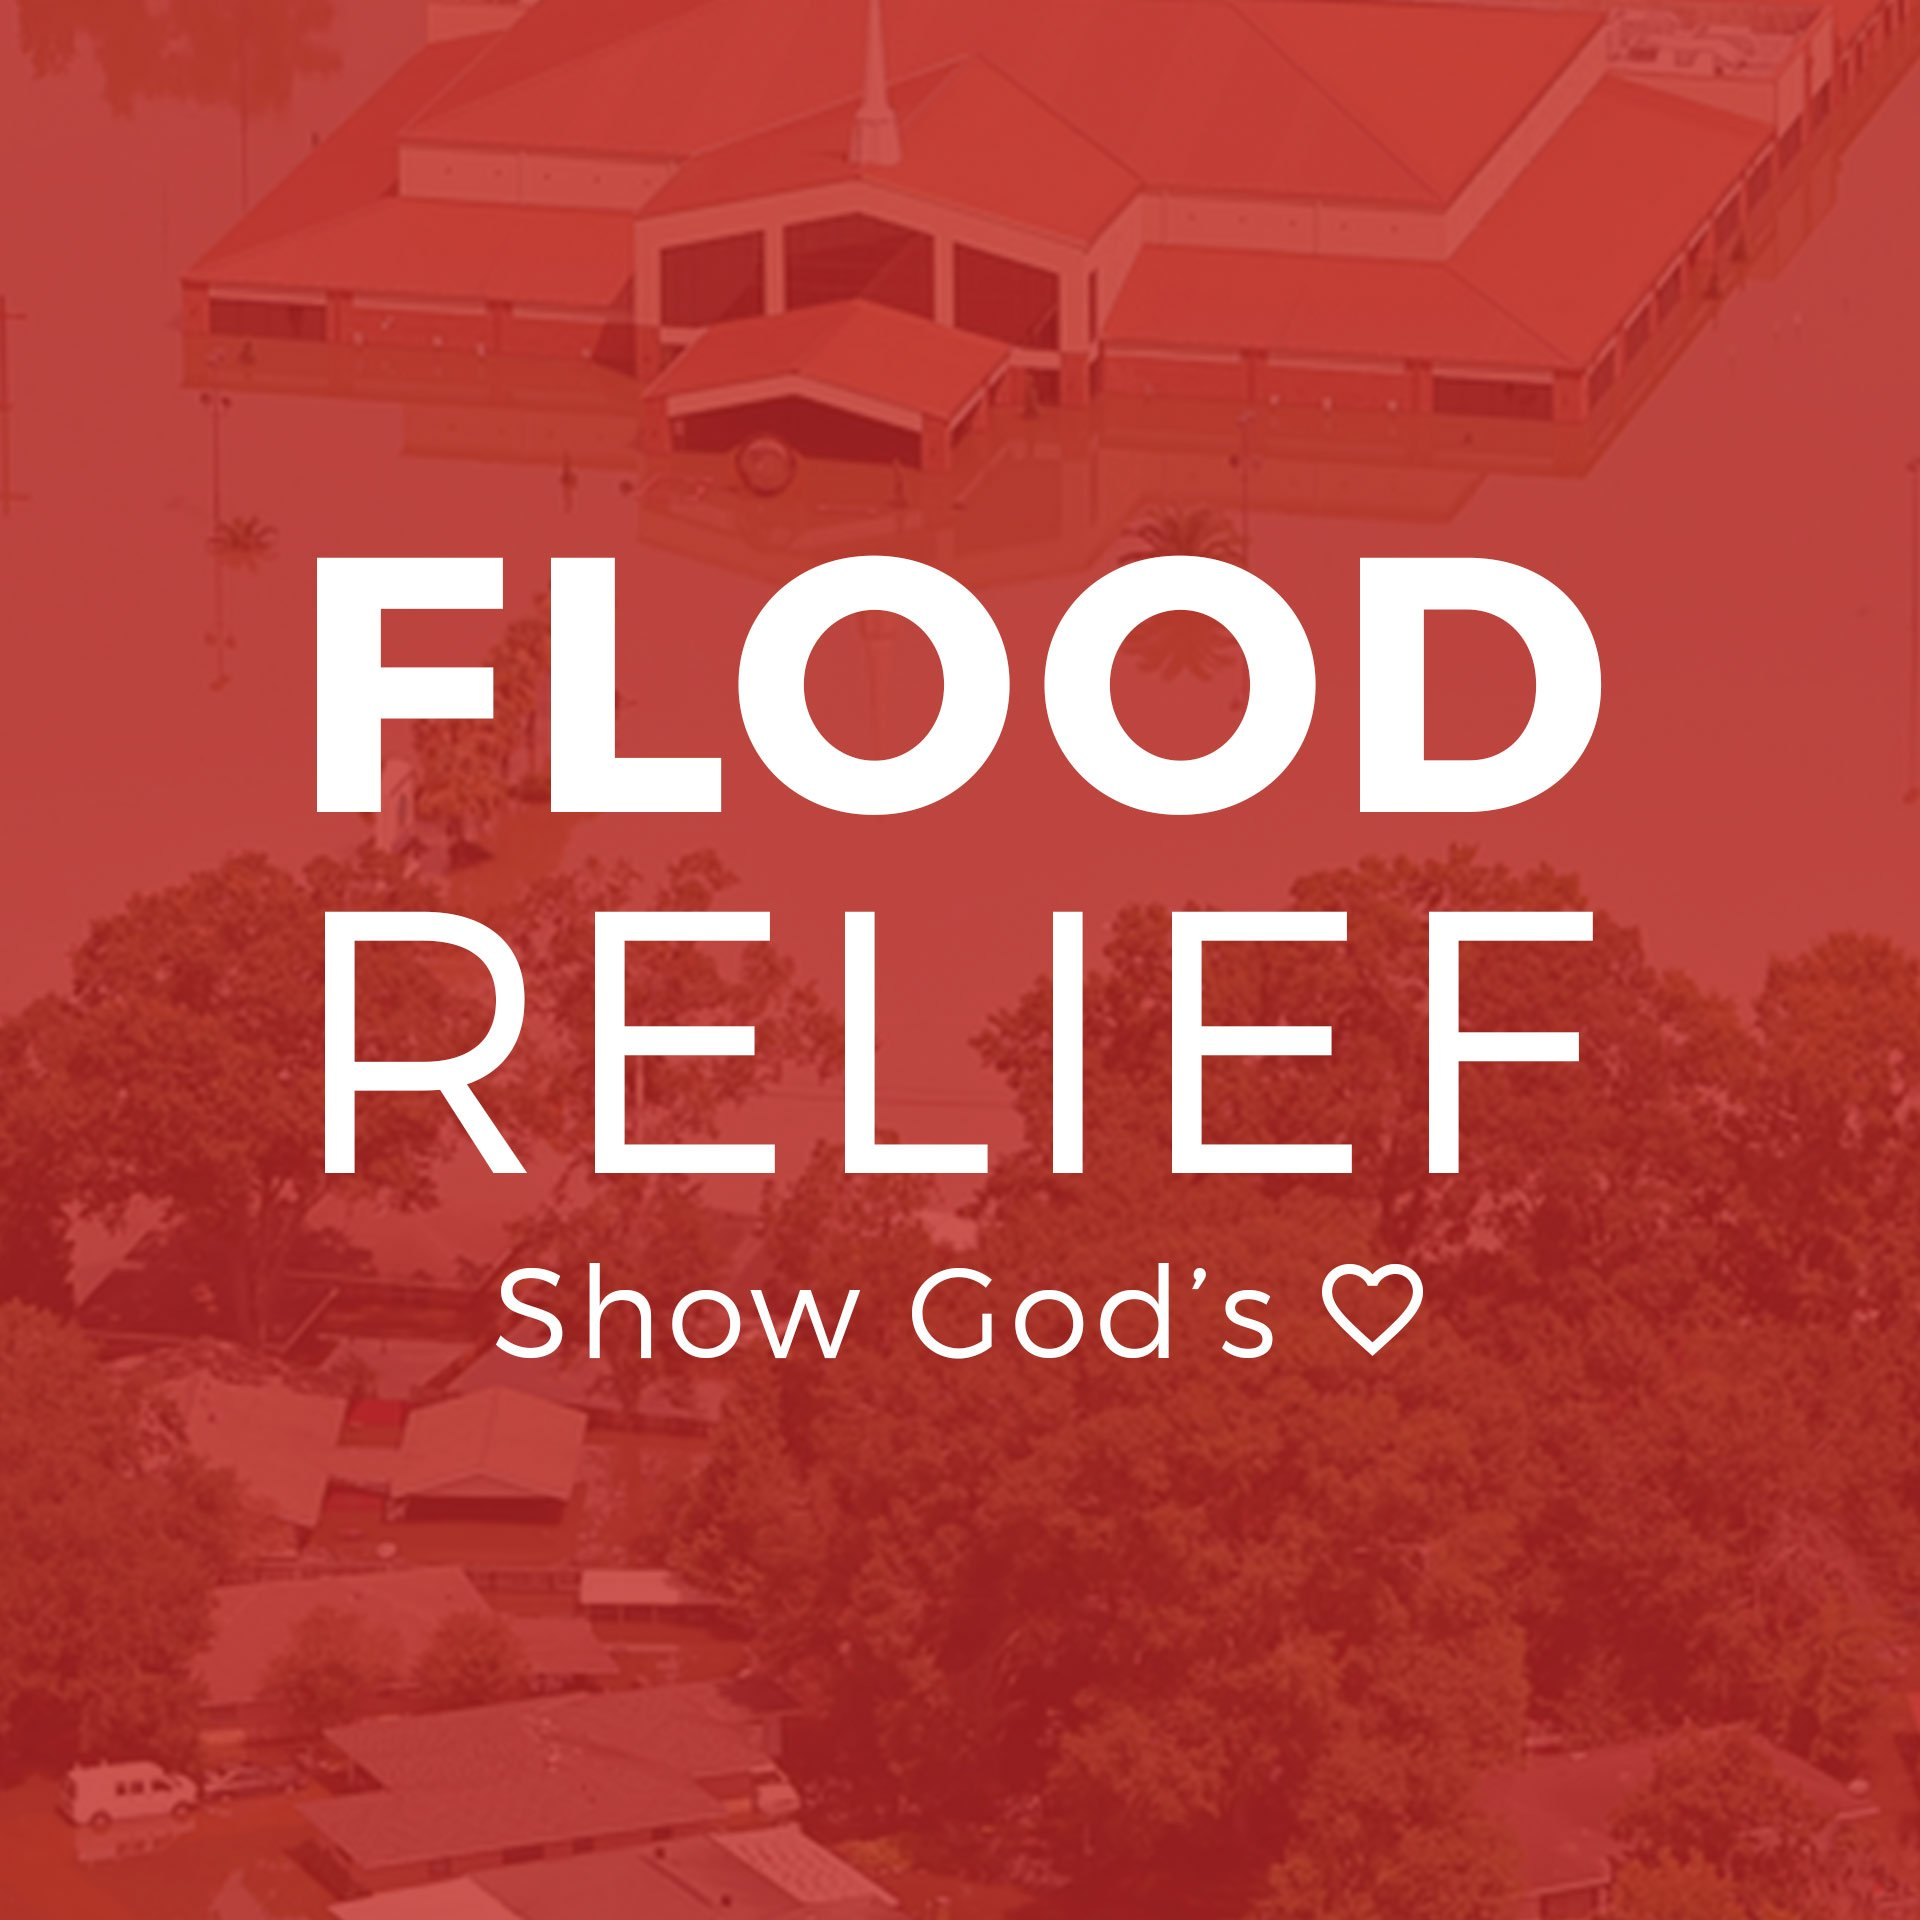 Tomorrow: help 4 Baton Rouge churches affected by flooding. Rally: 7am, LCC Annex. Sign up: https://t.co/neL6LNsnjY. https://t.co/9C5iXiq6OO